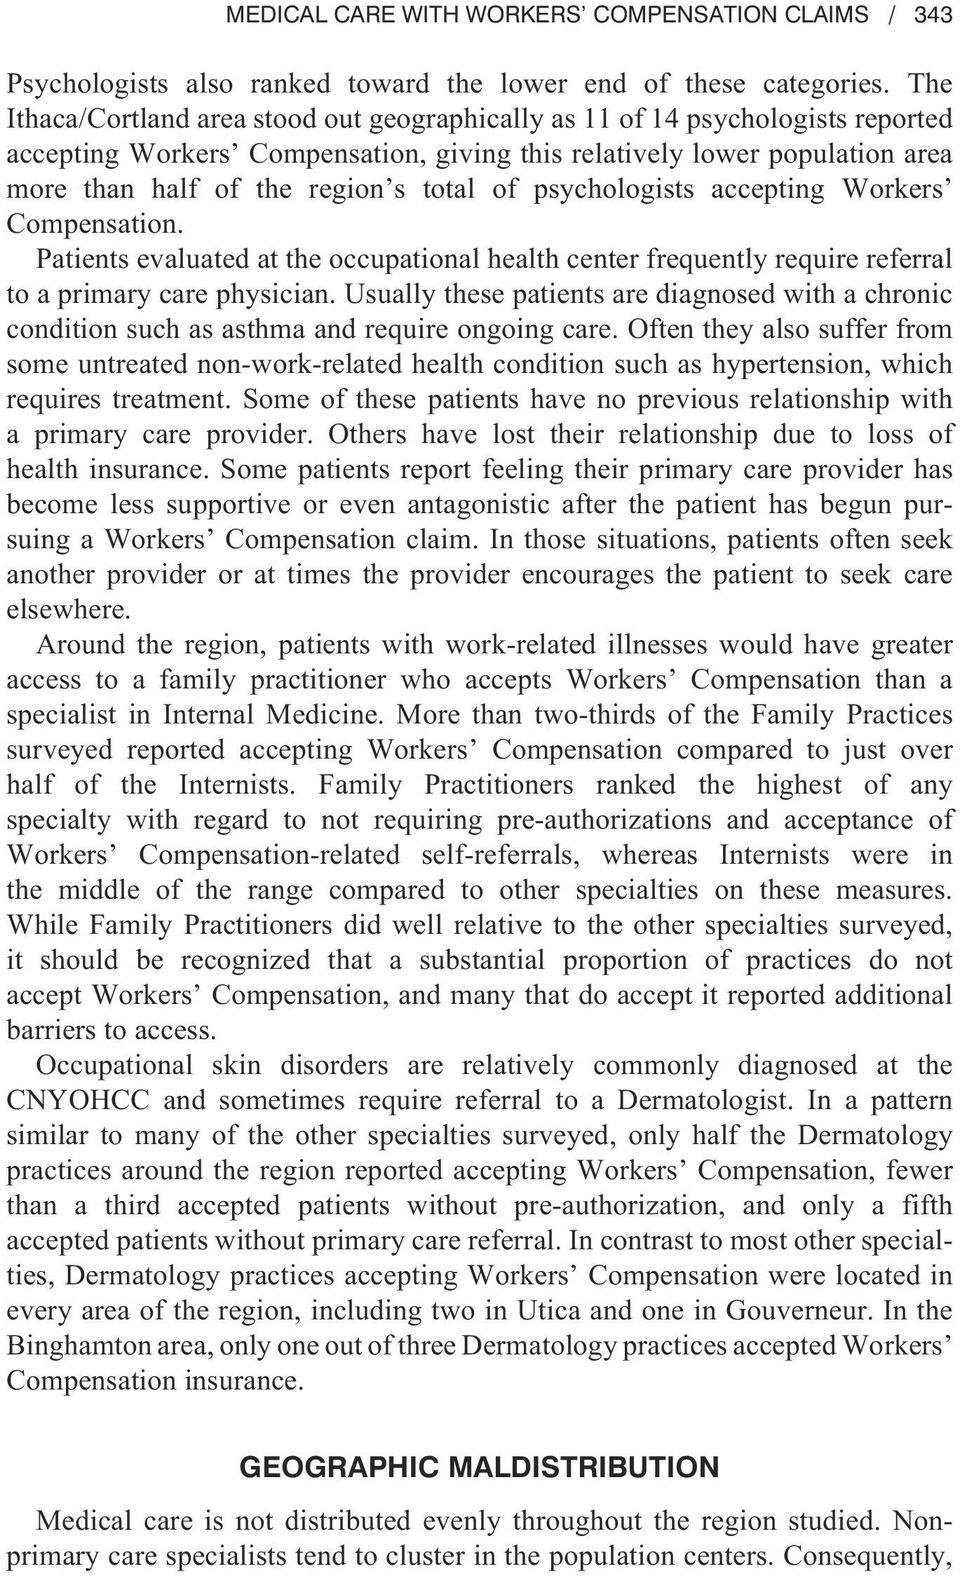 of psychologists accepting Workers Compensation. Patients evaluated at the occupational health center frequently require referral to a primary care physician.